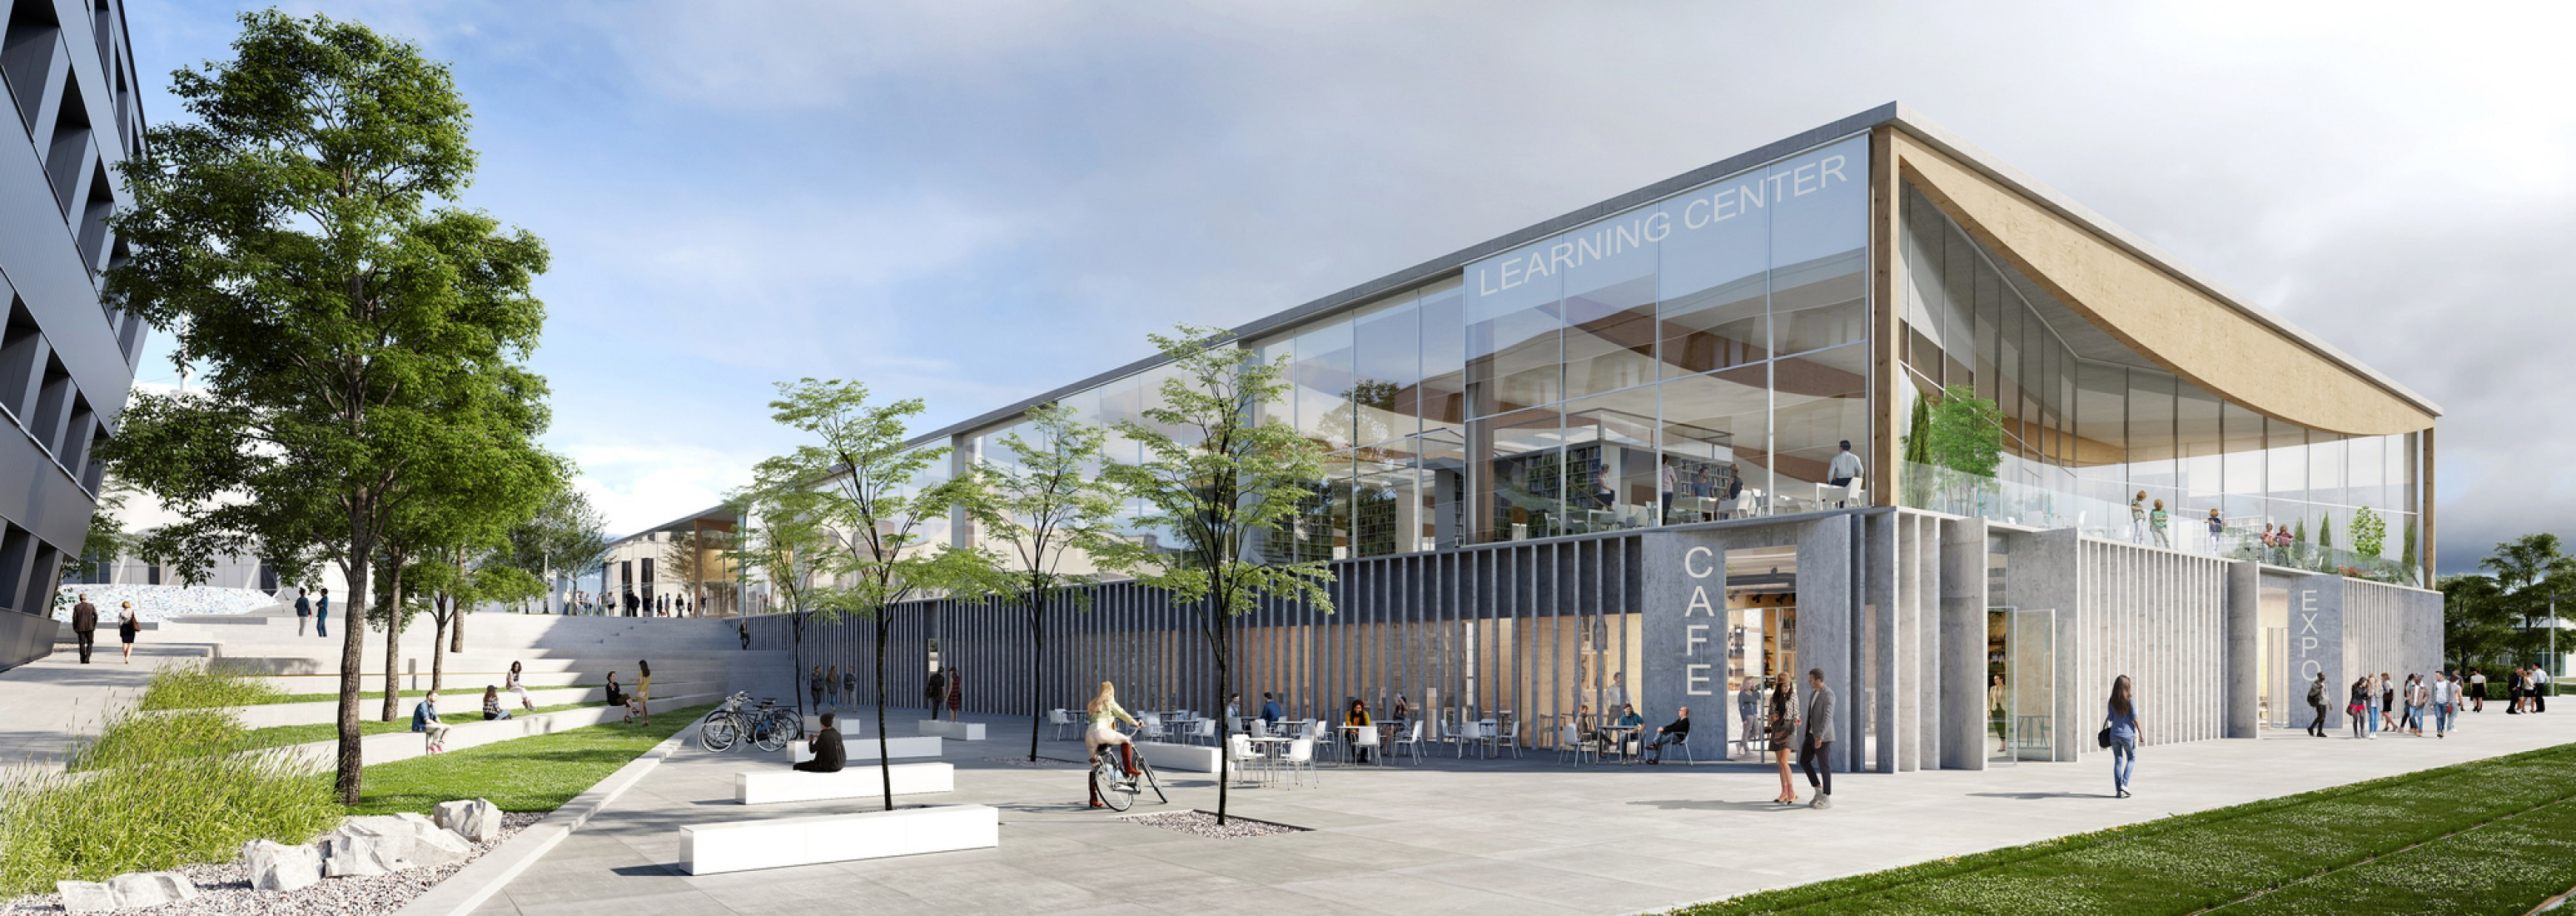 Outside view rendering. Lumière University Lyon 2 Learning Centre by ALA Architects